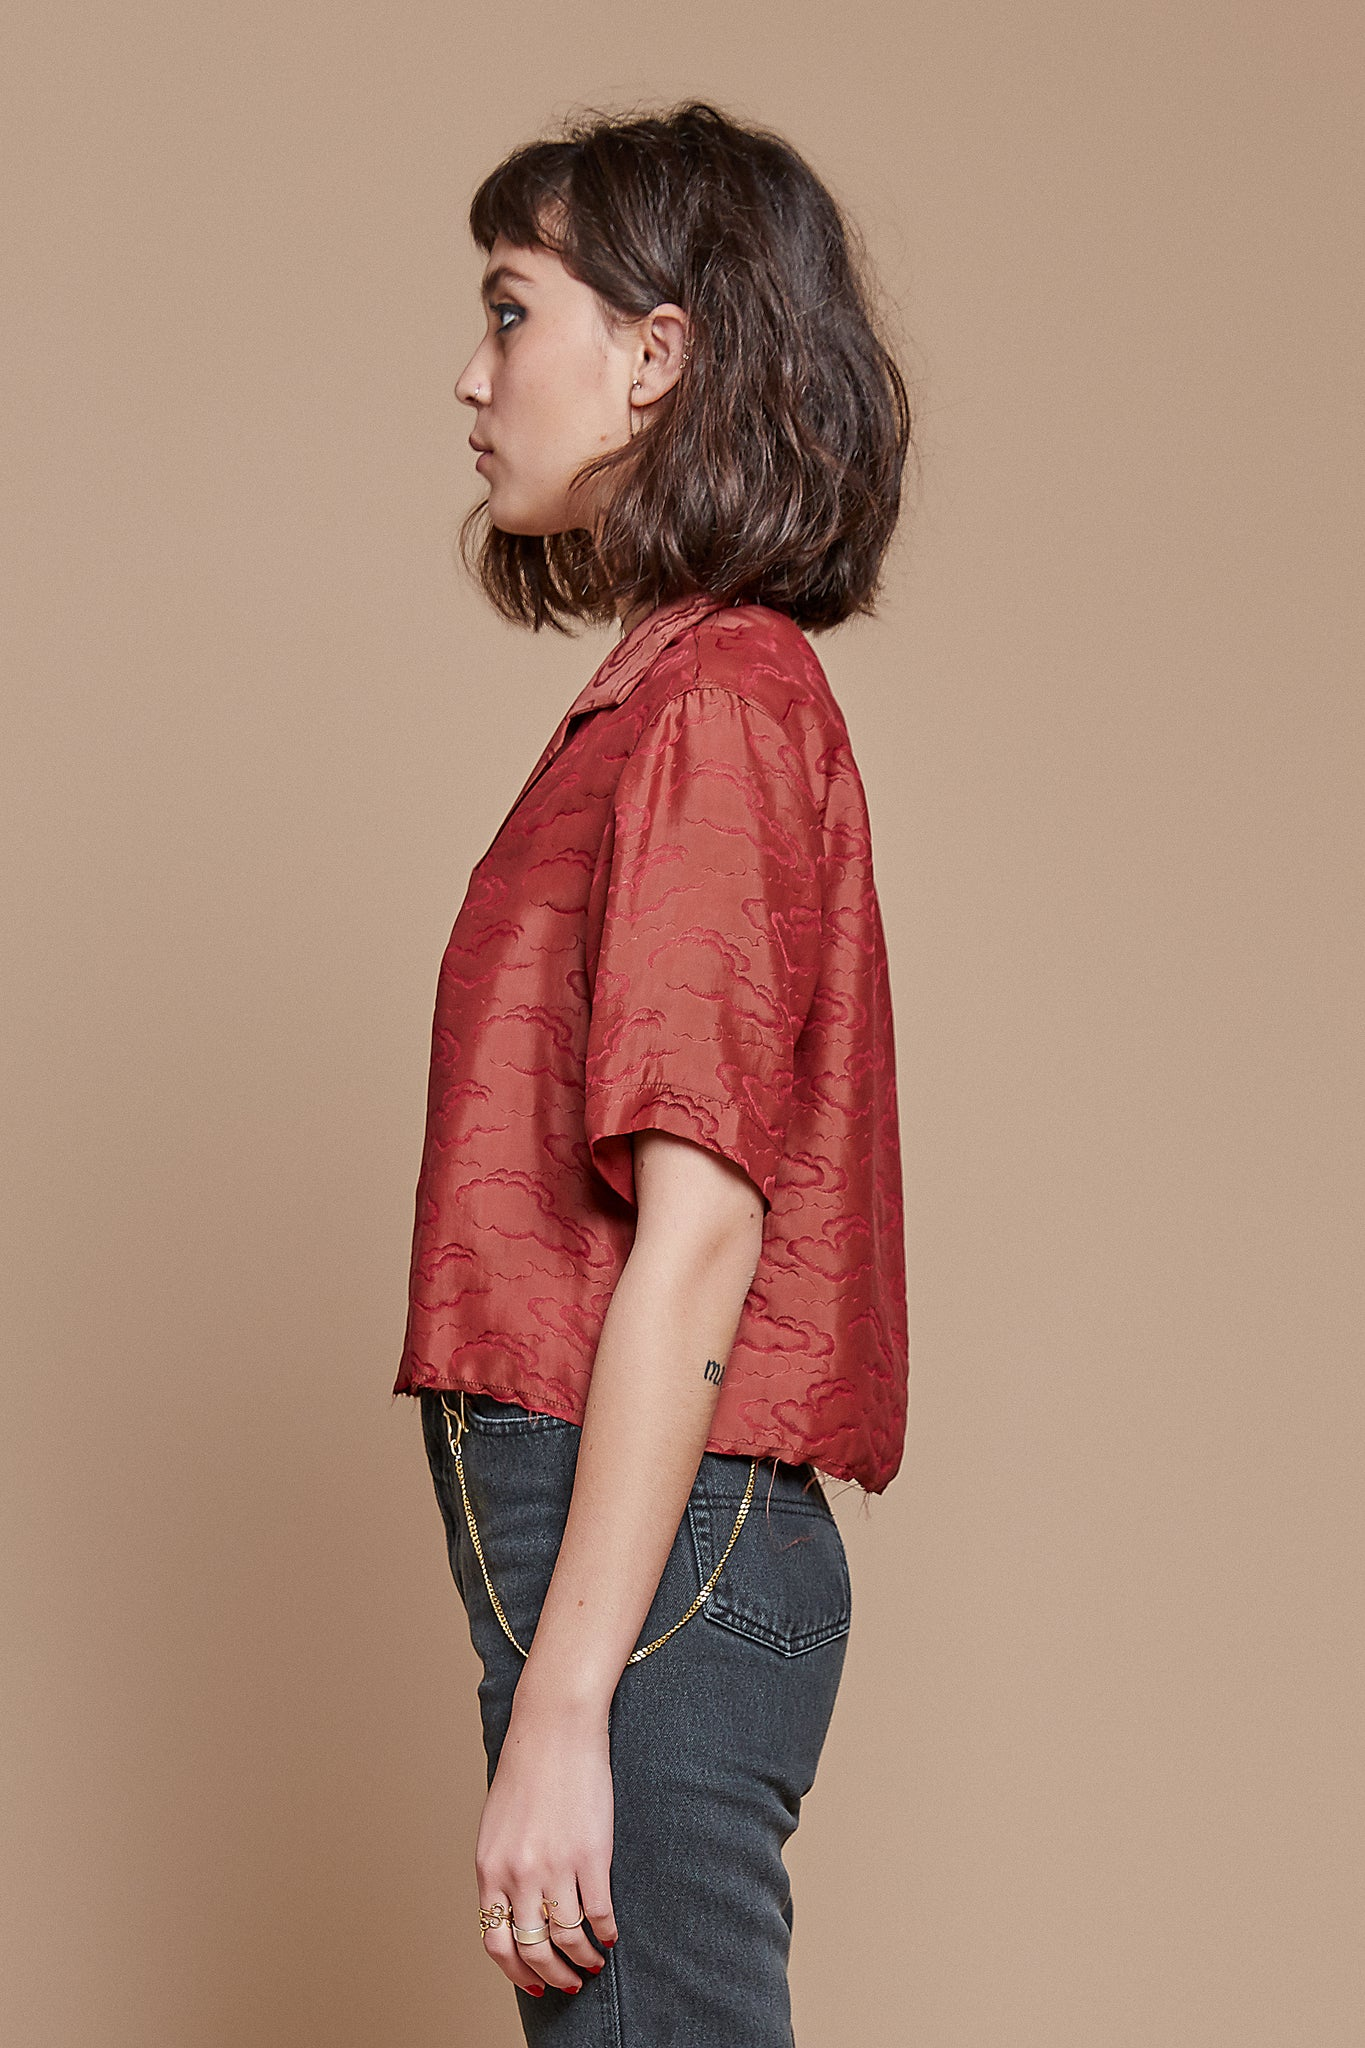 Red Clouds Cropped Camp Collar Shirt